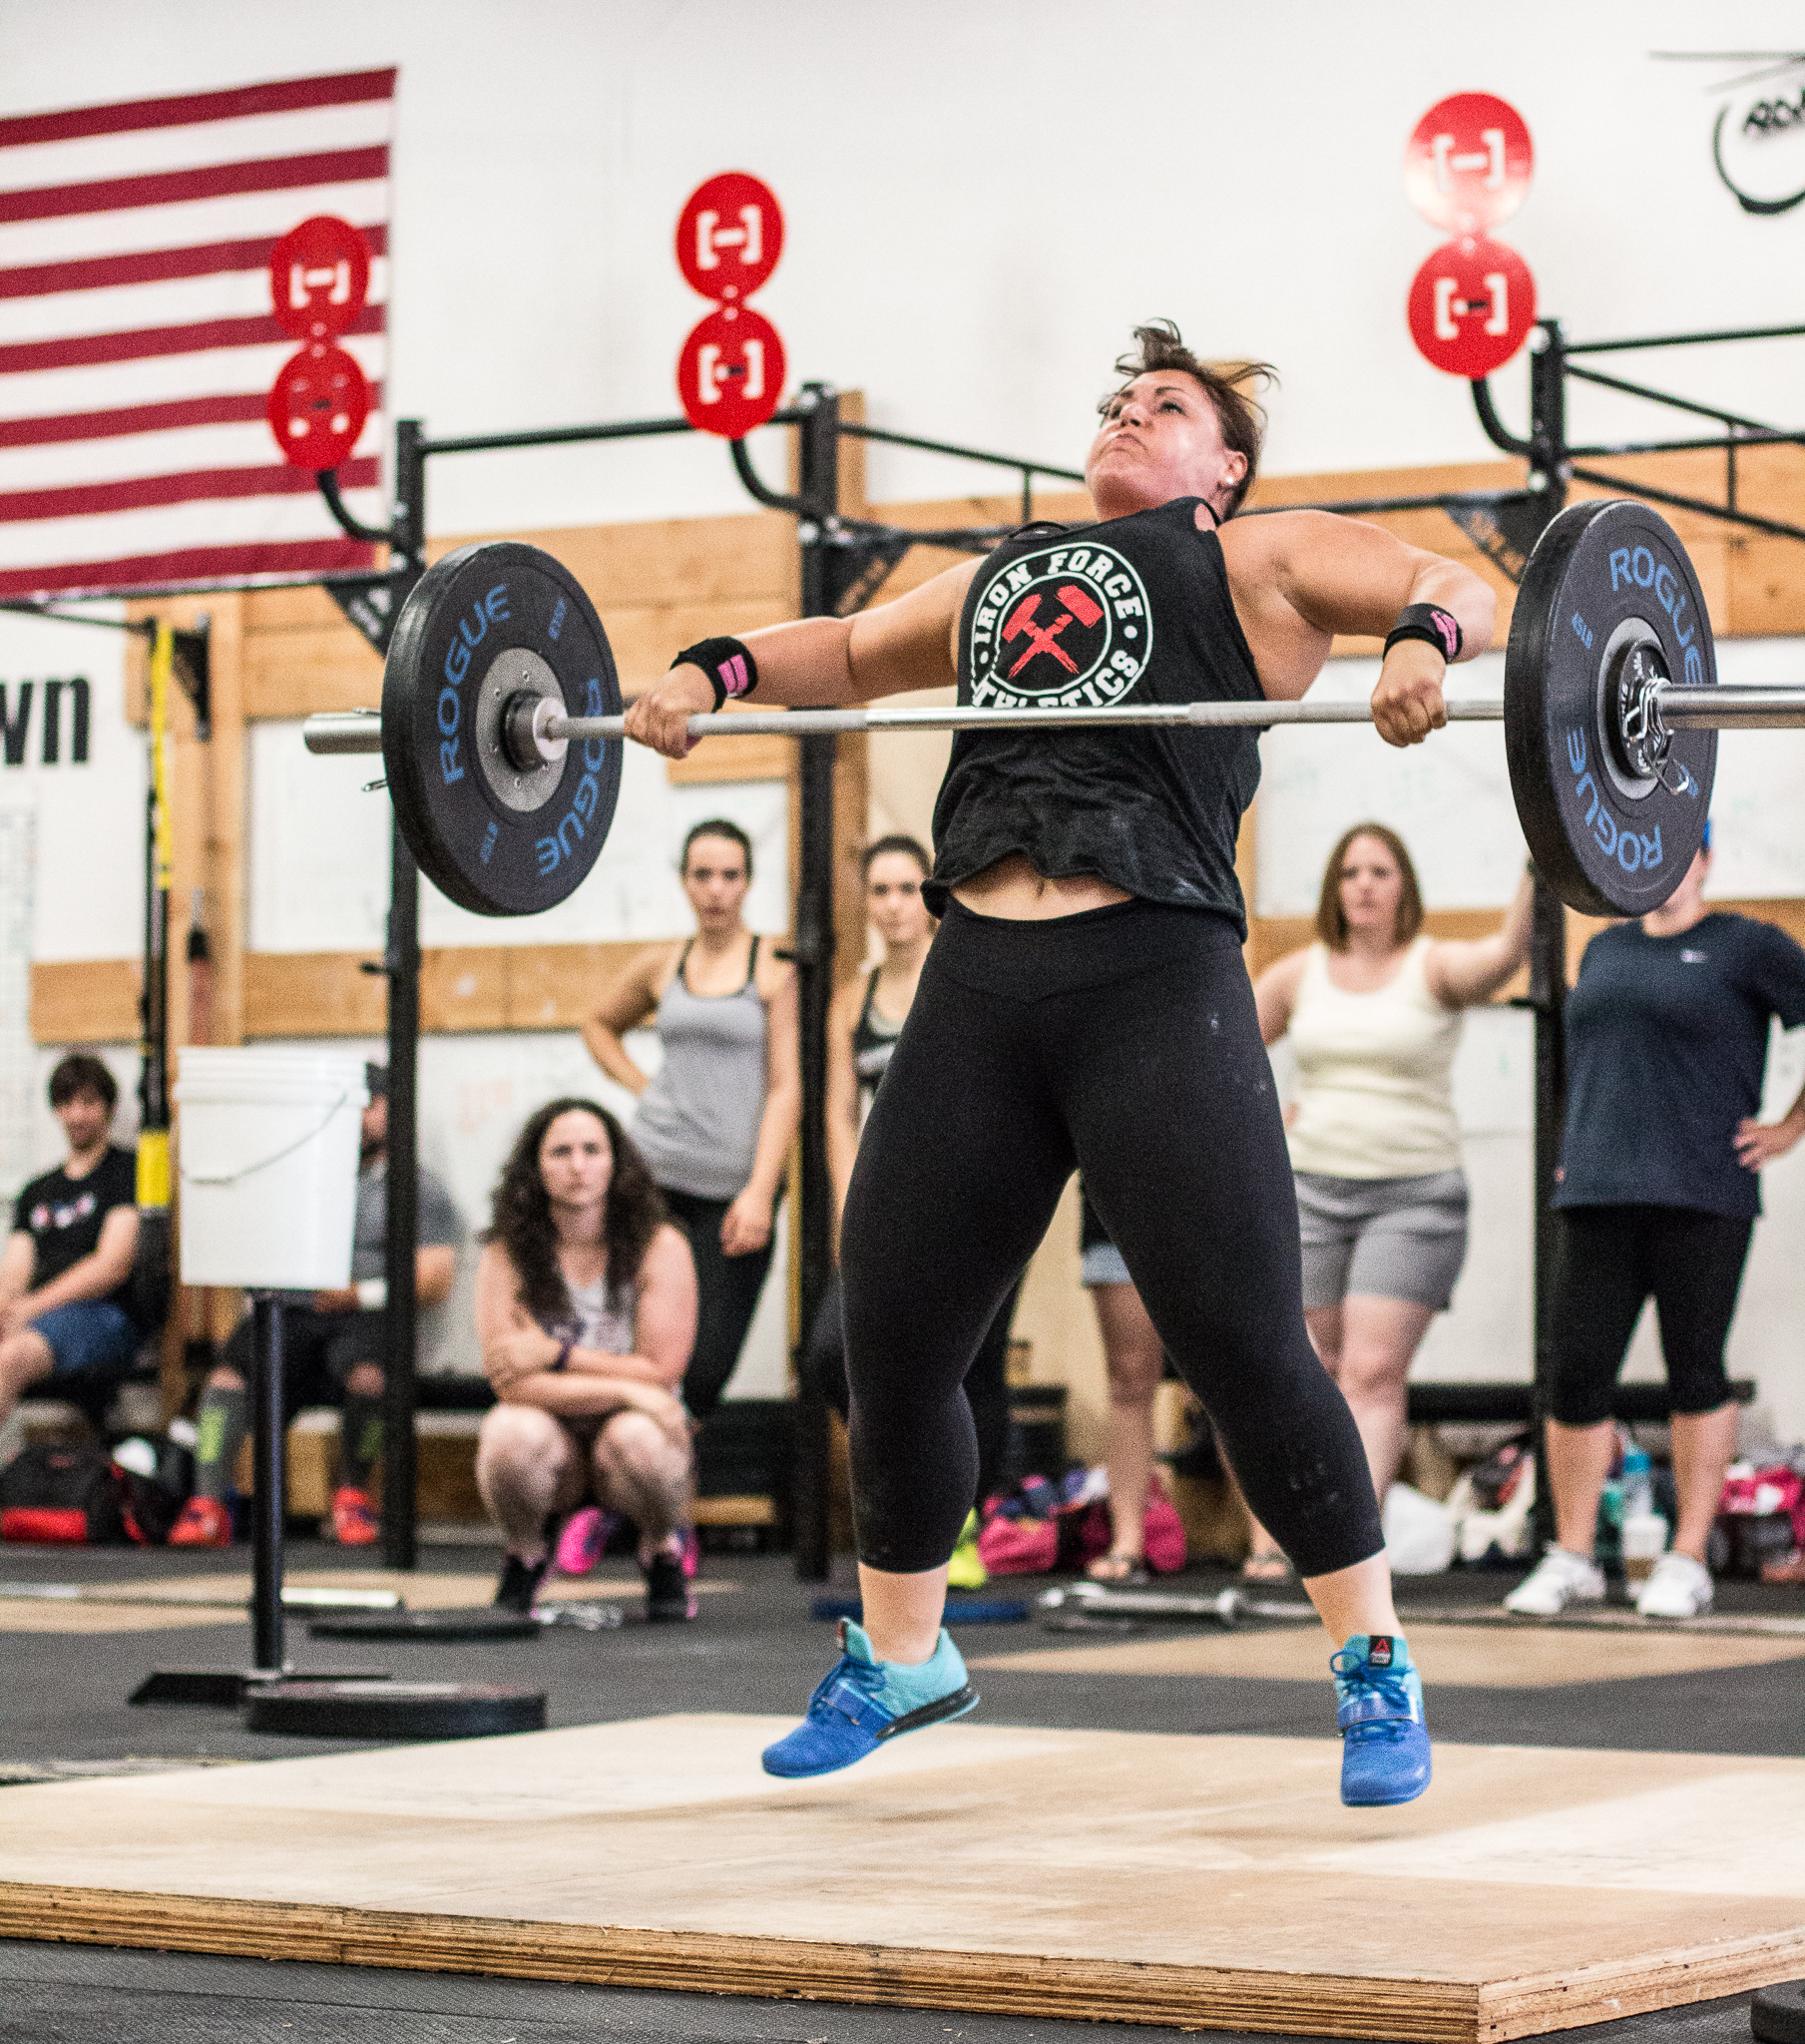 lift-for-purpose-weightlifting-meet-crossfit-strongtown-everyday-lifters (16 of 40).jpg